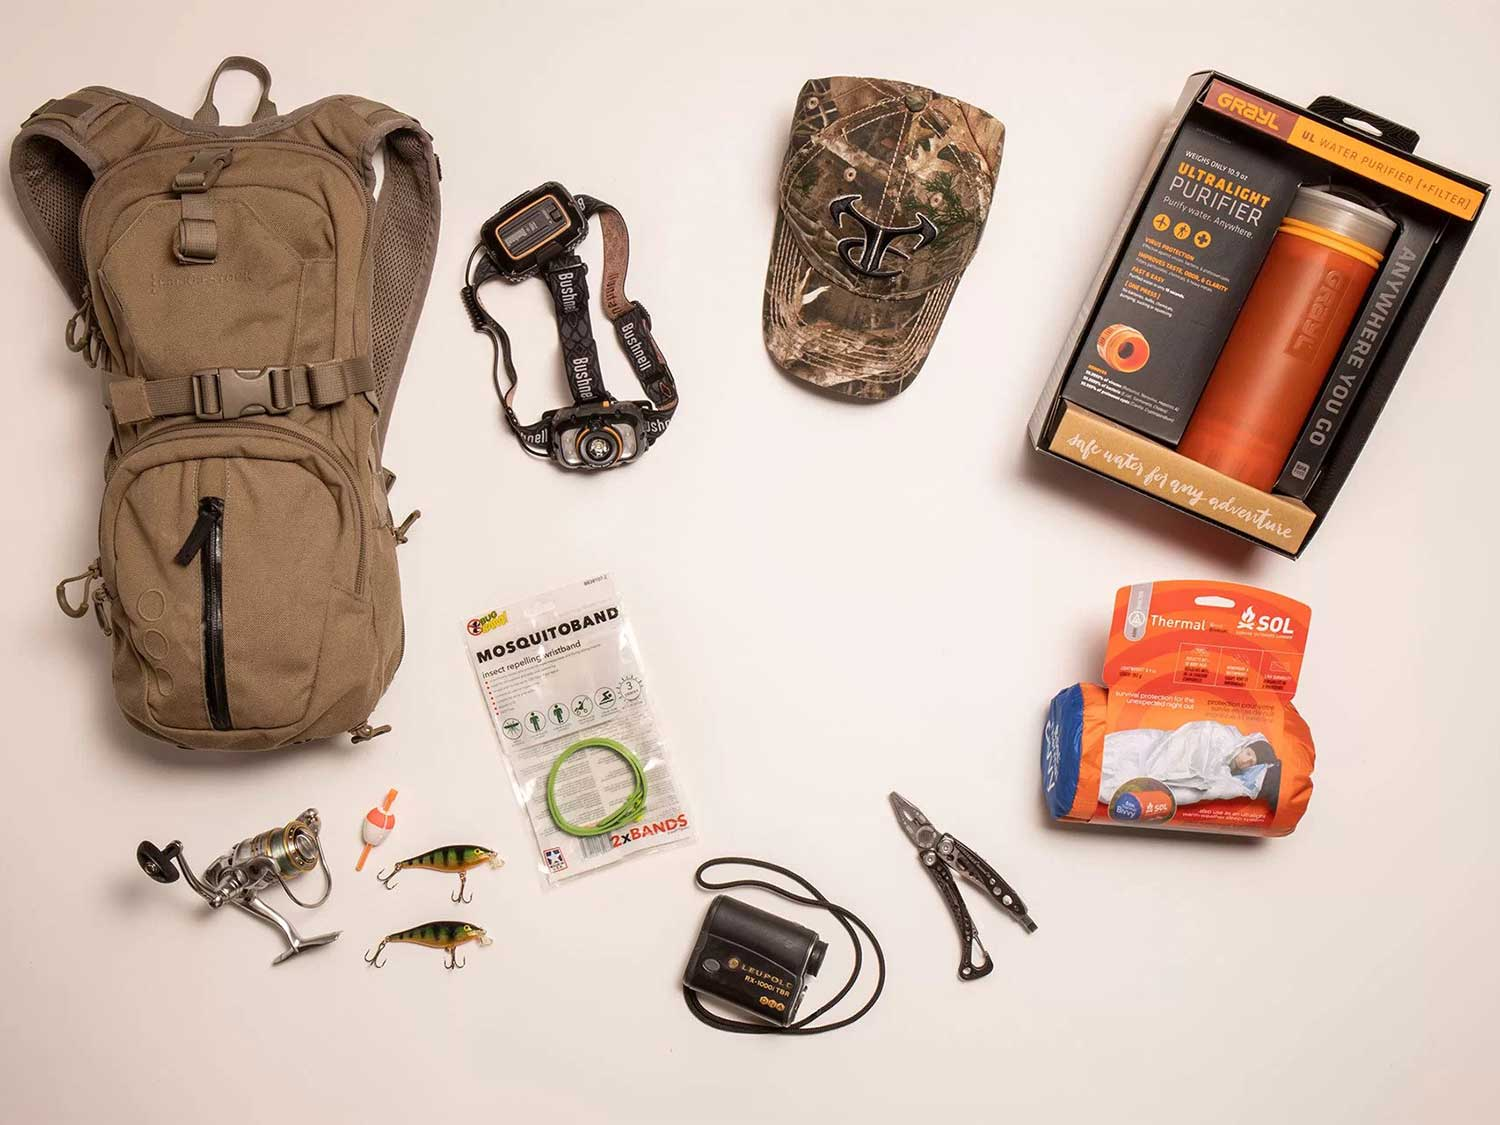 5 Reasons Outdoor Gear Subscription Boxes Make Great Gifts